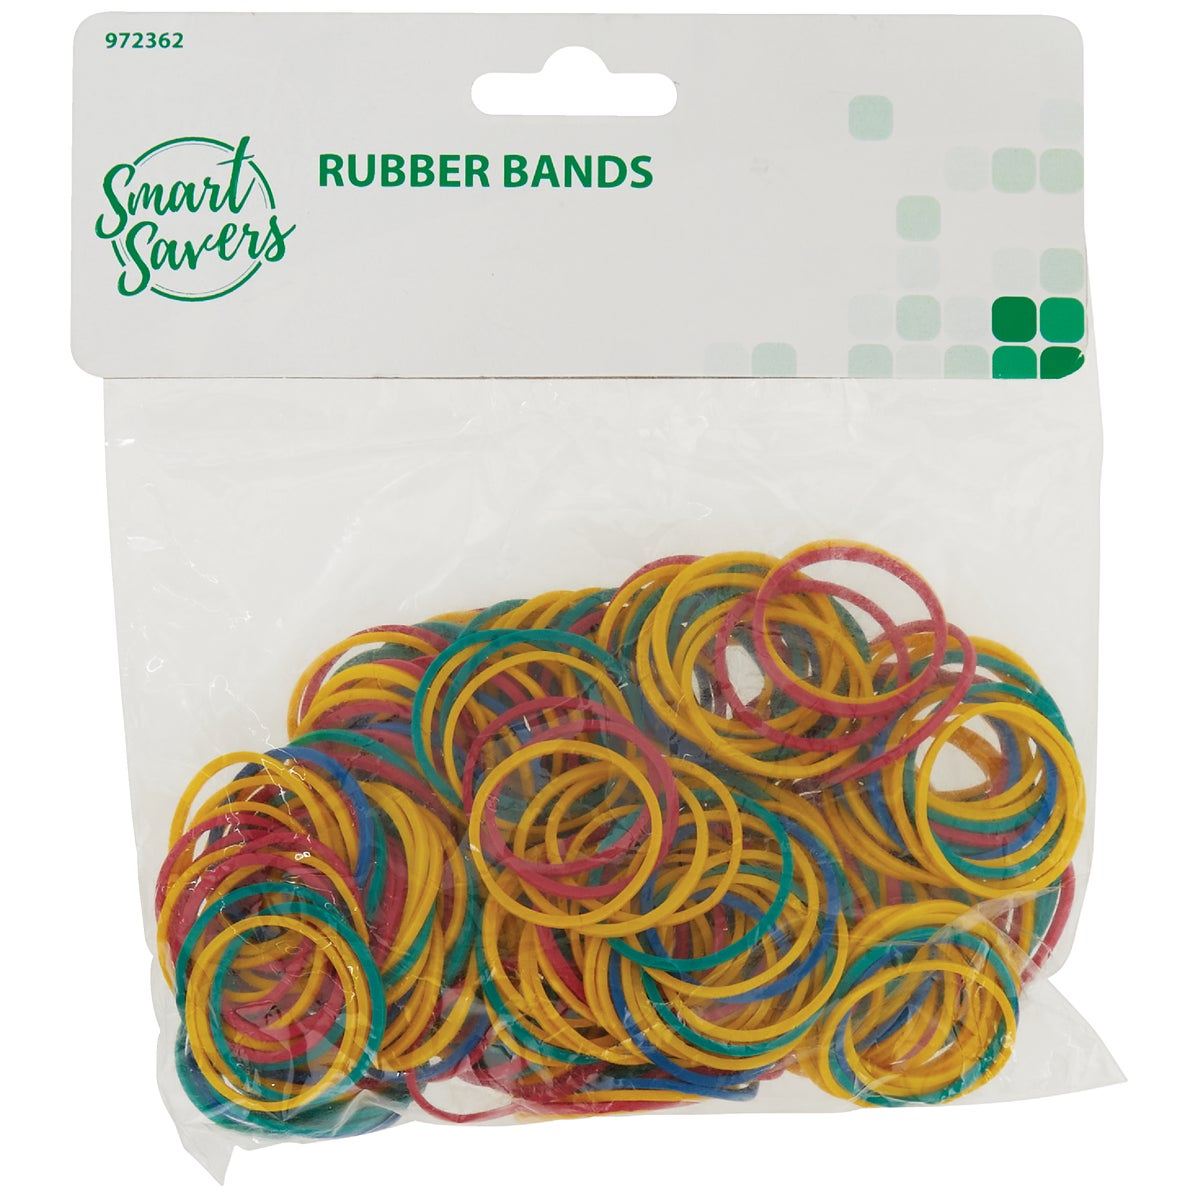 Smart Savers Rubberbands, 10230